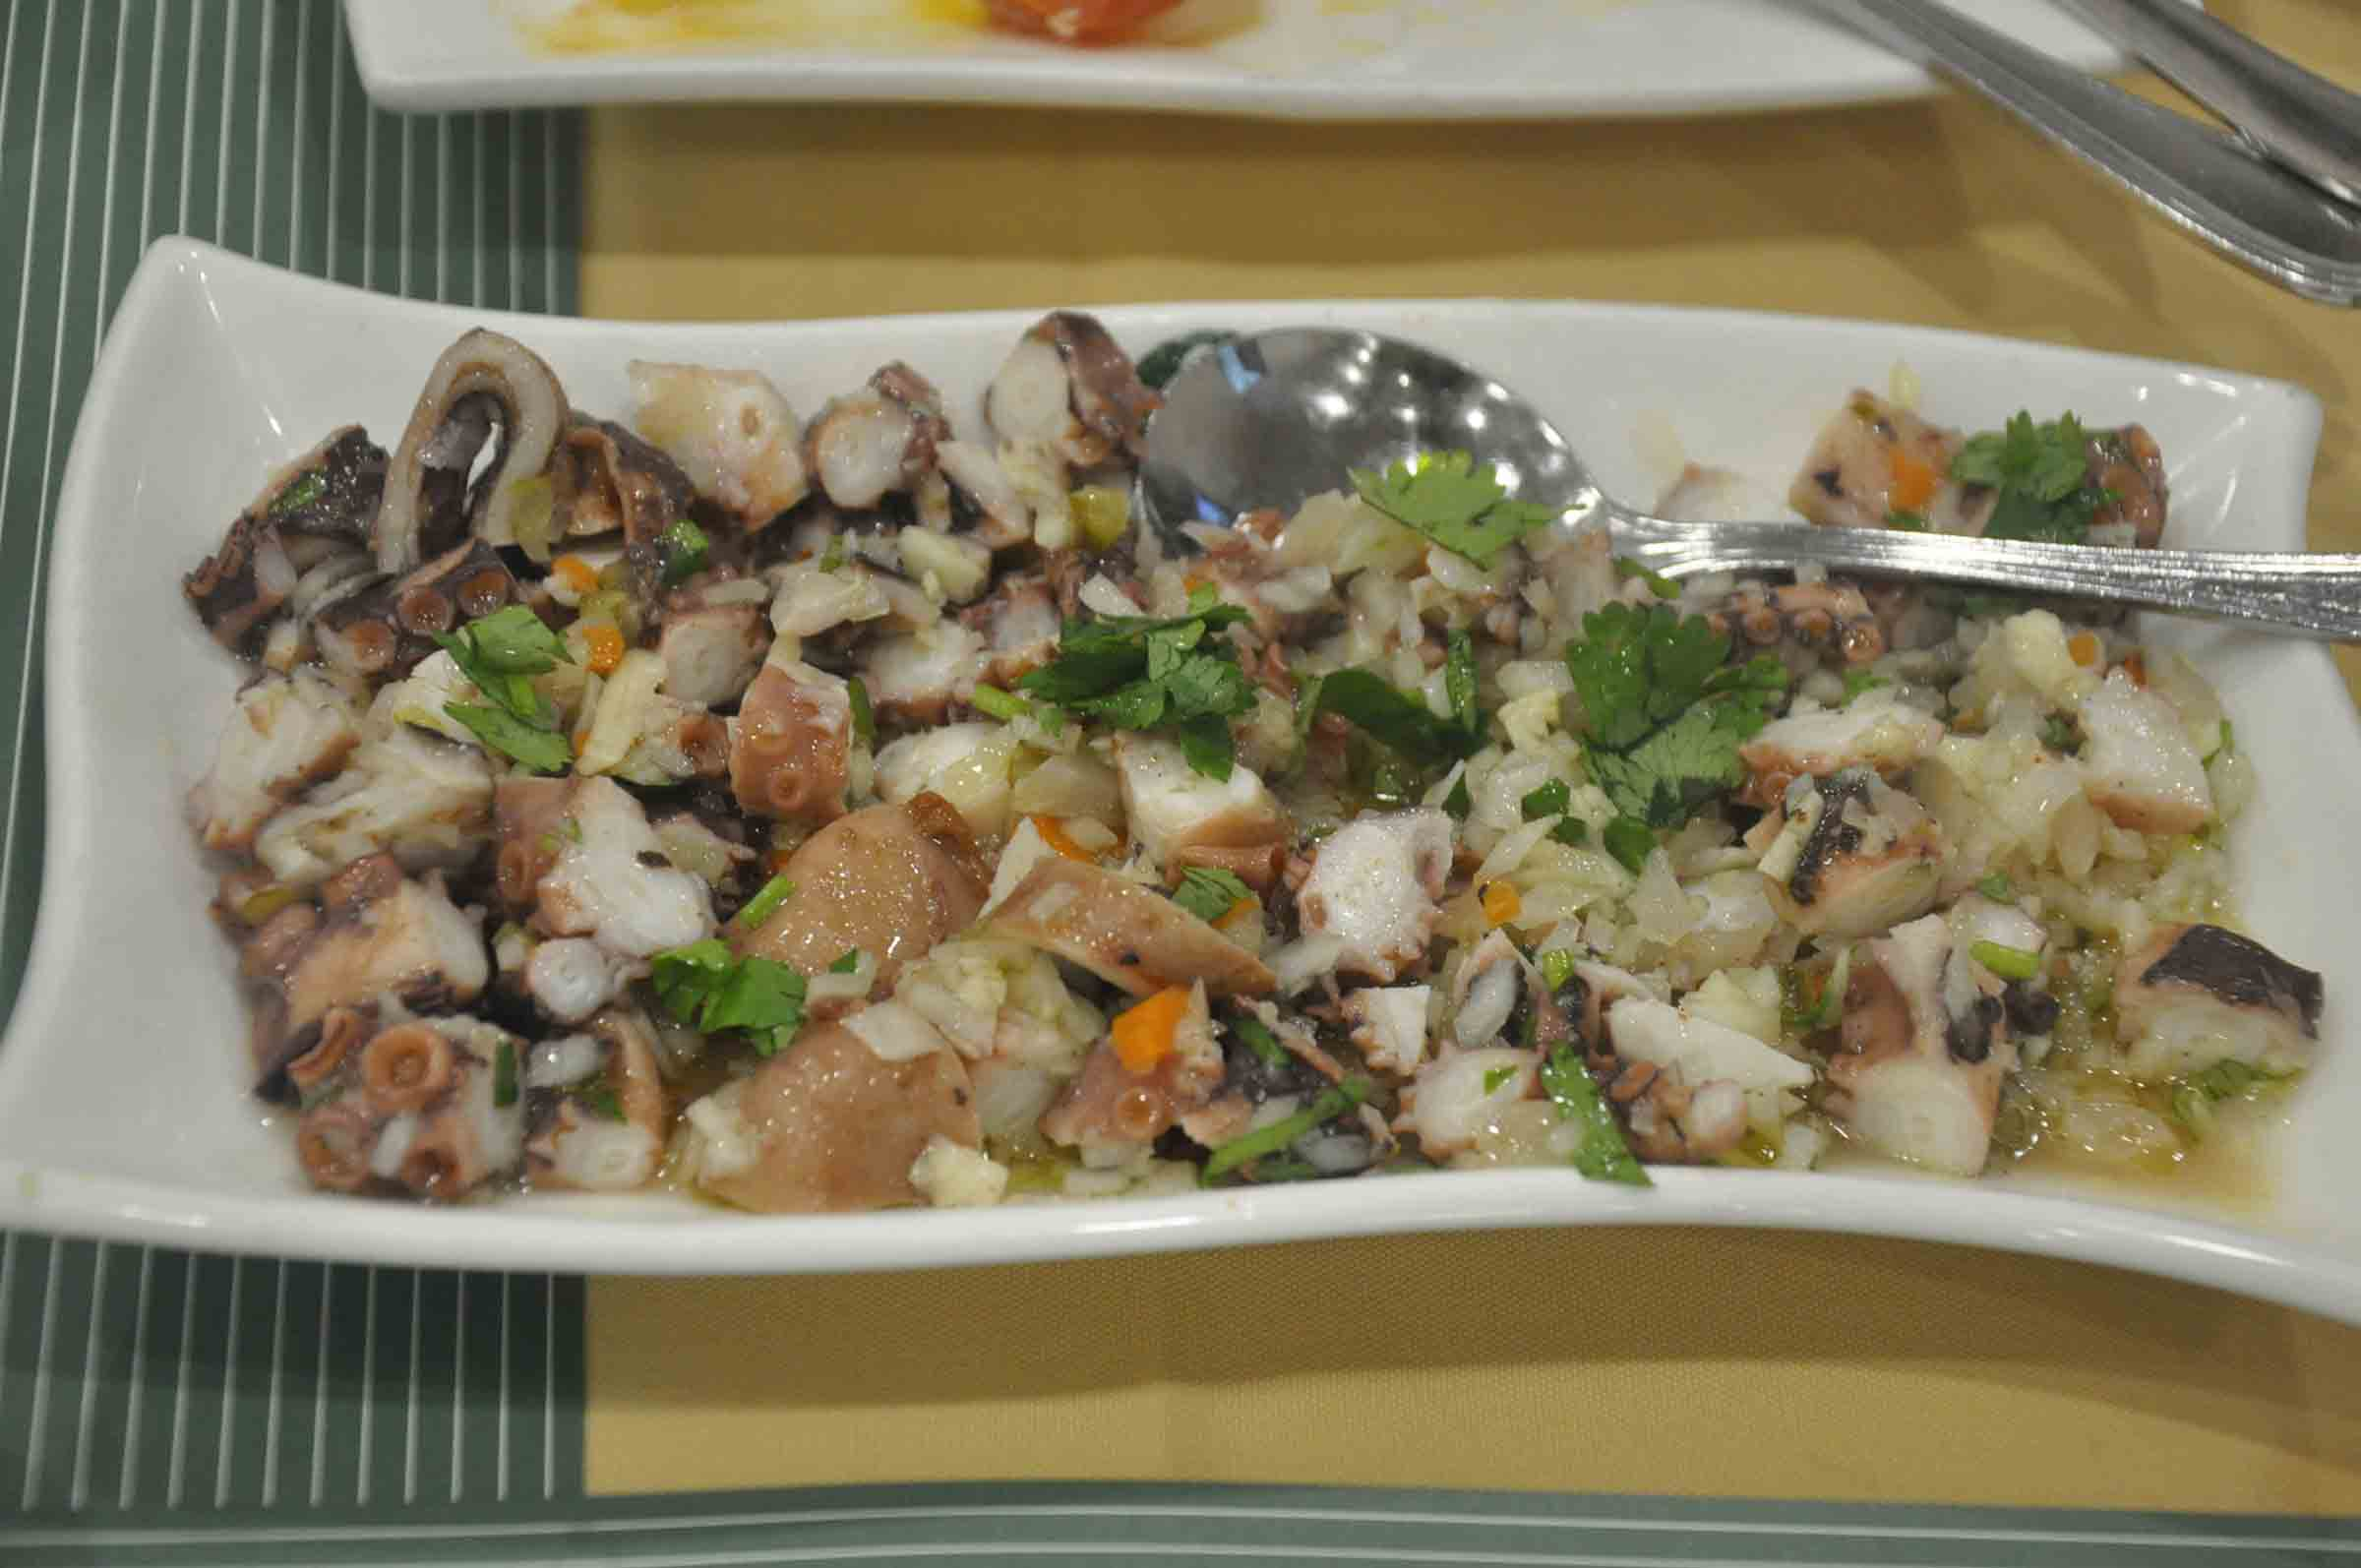 Apo Mac Restaurant octopus salad